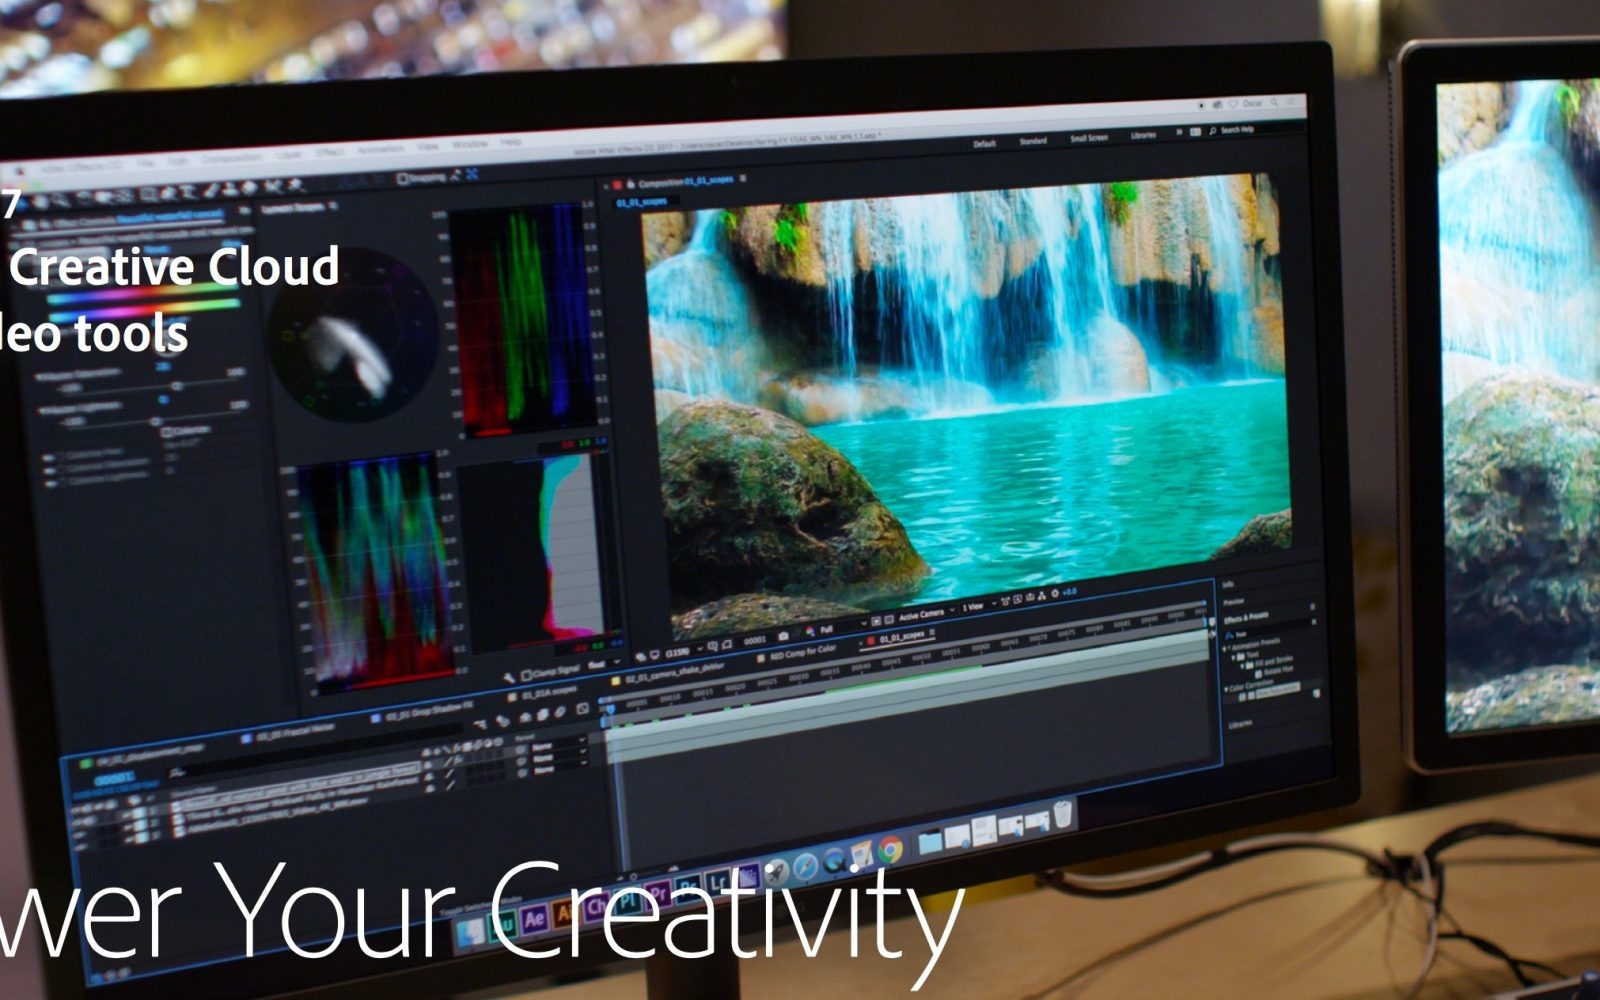 Adobe updates Creative Cloud video tools for pros ahead of